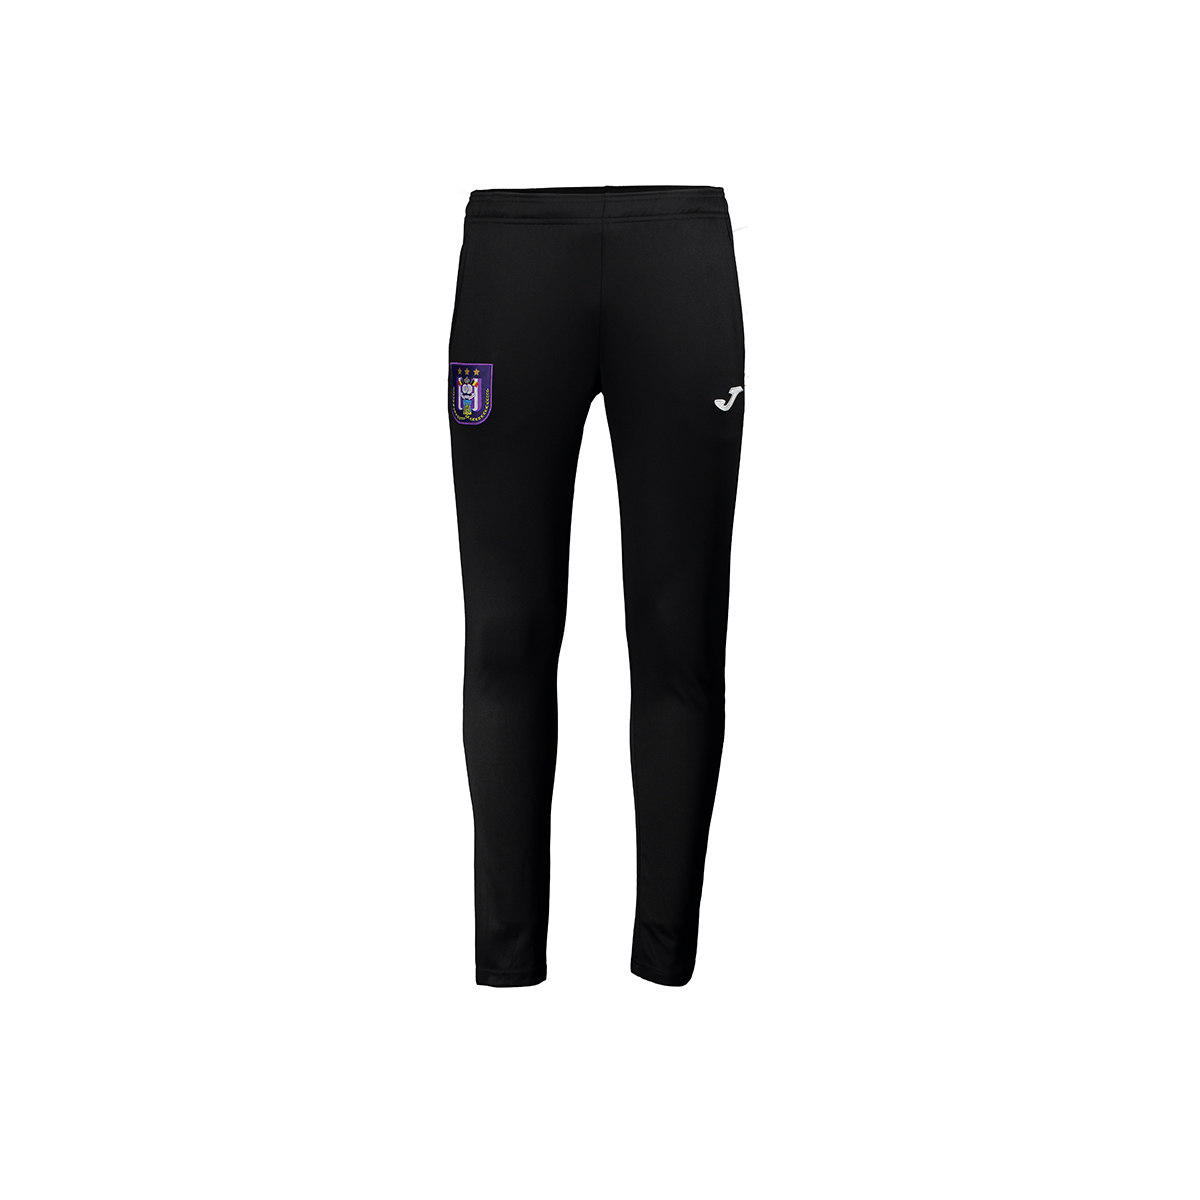 RSCA Training Pants Kids 2020/2021